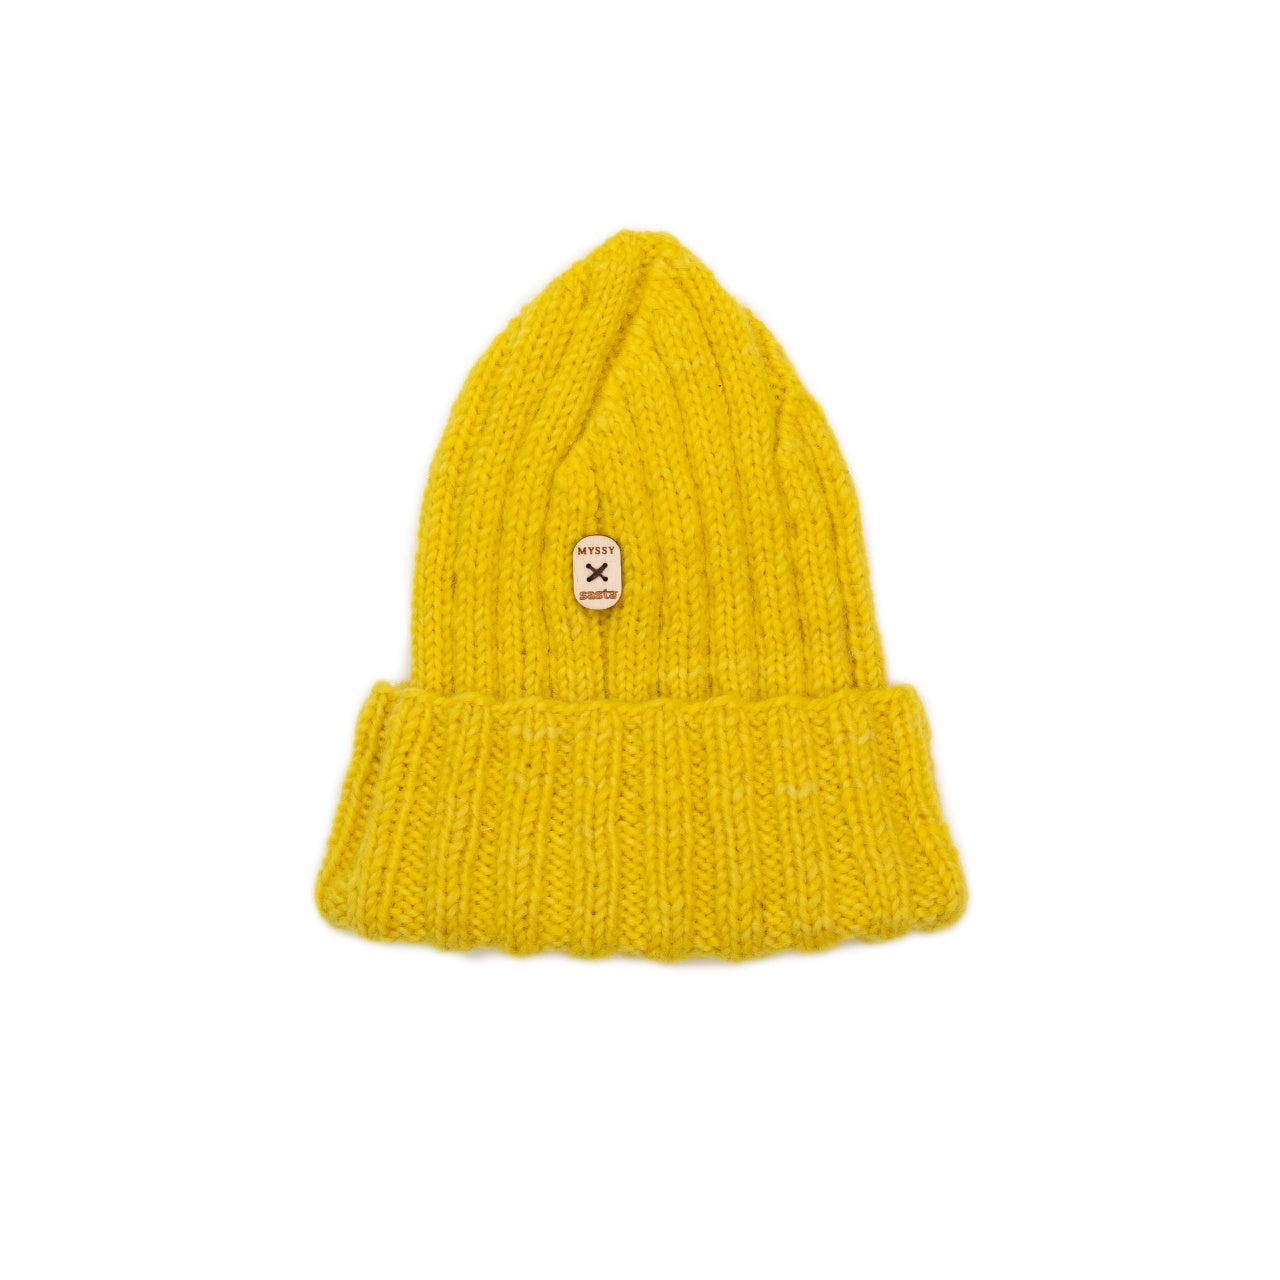 Bright Yellow Kalastaja Sasta Beanie